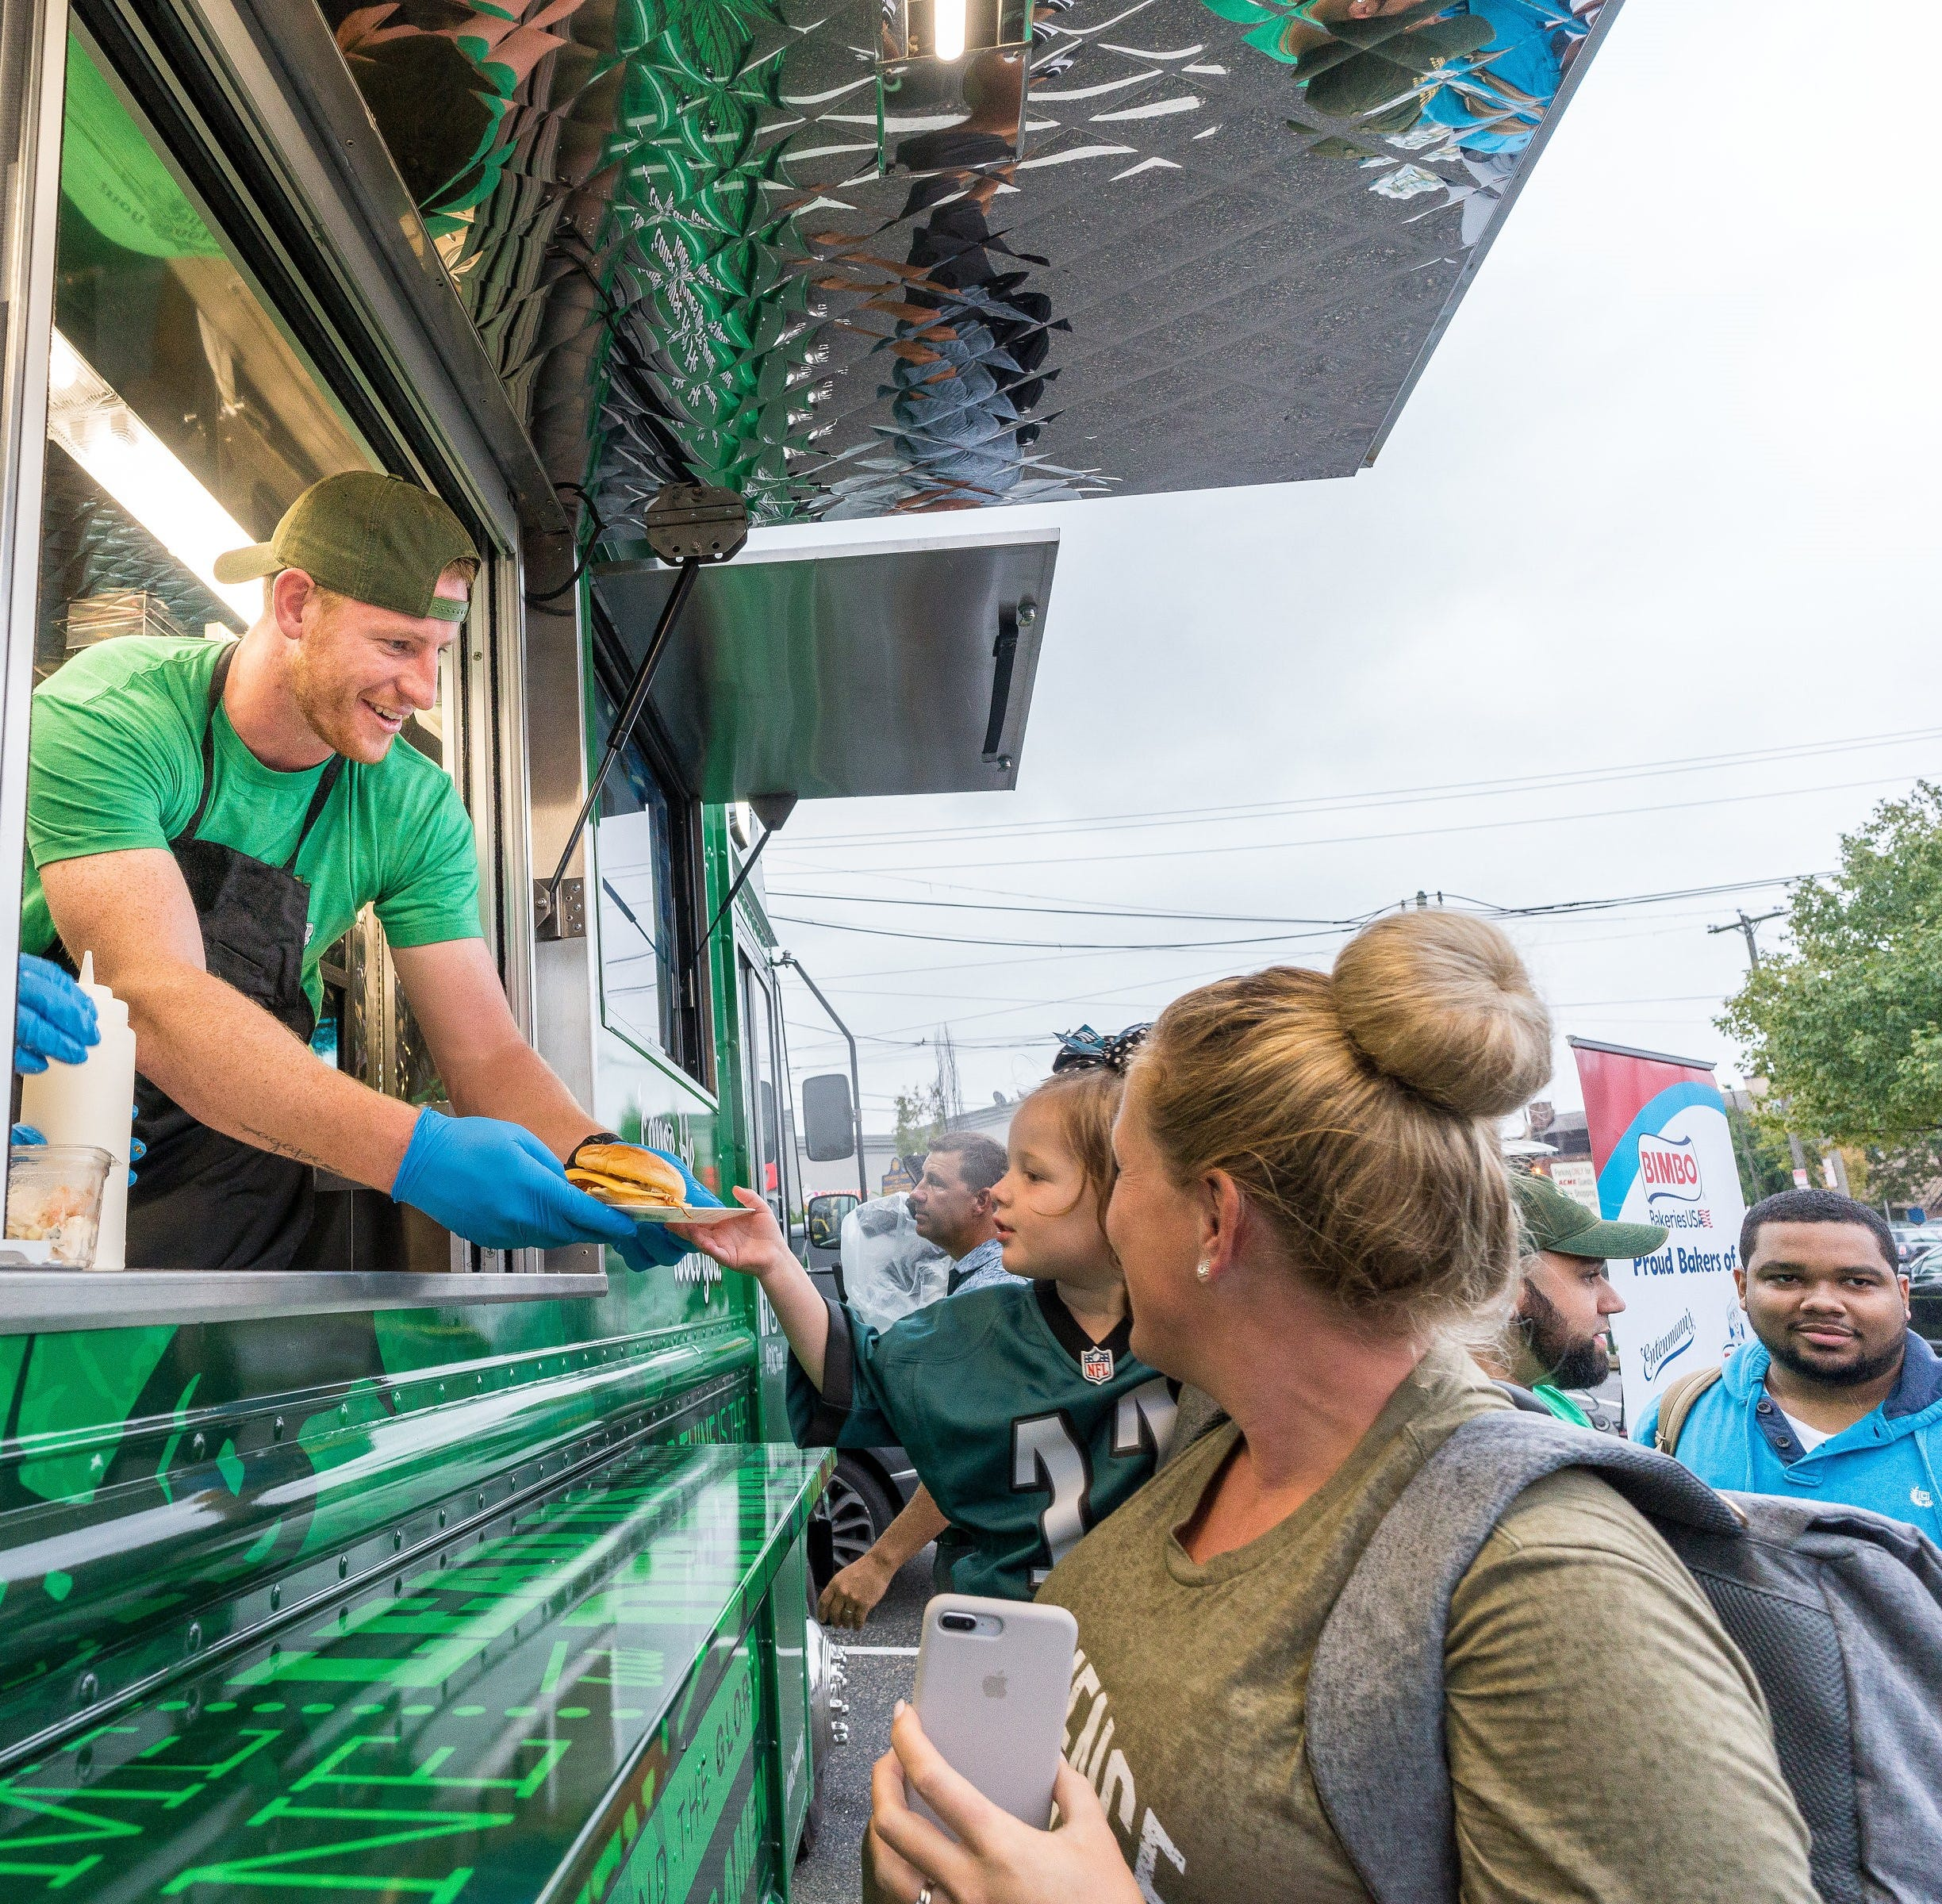 Food-truck service backed by Carson Wentz moves into former Rockhill in Cherry Hill